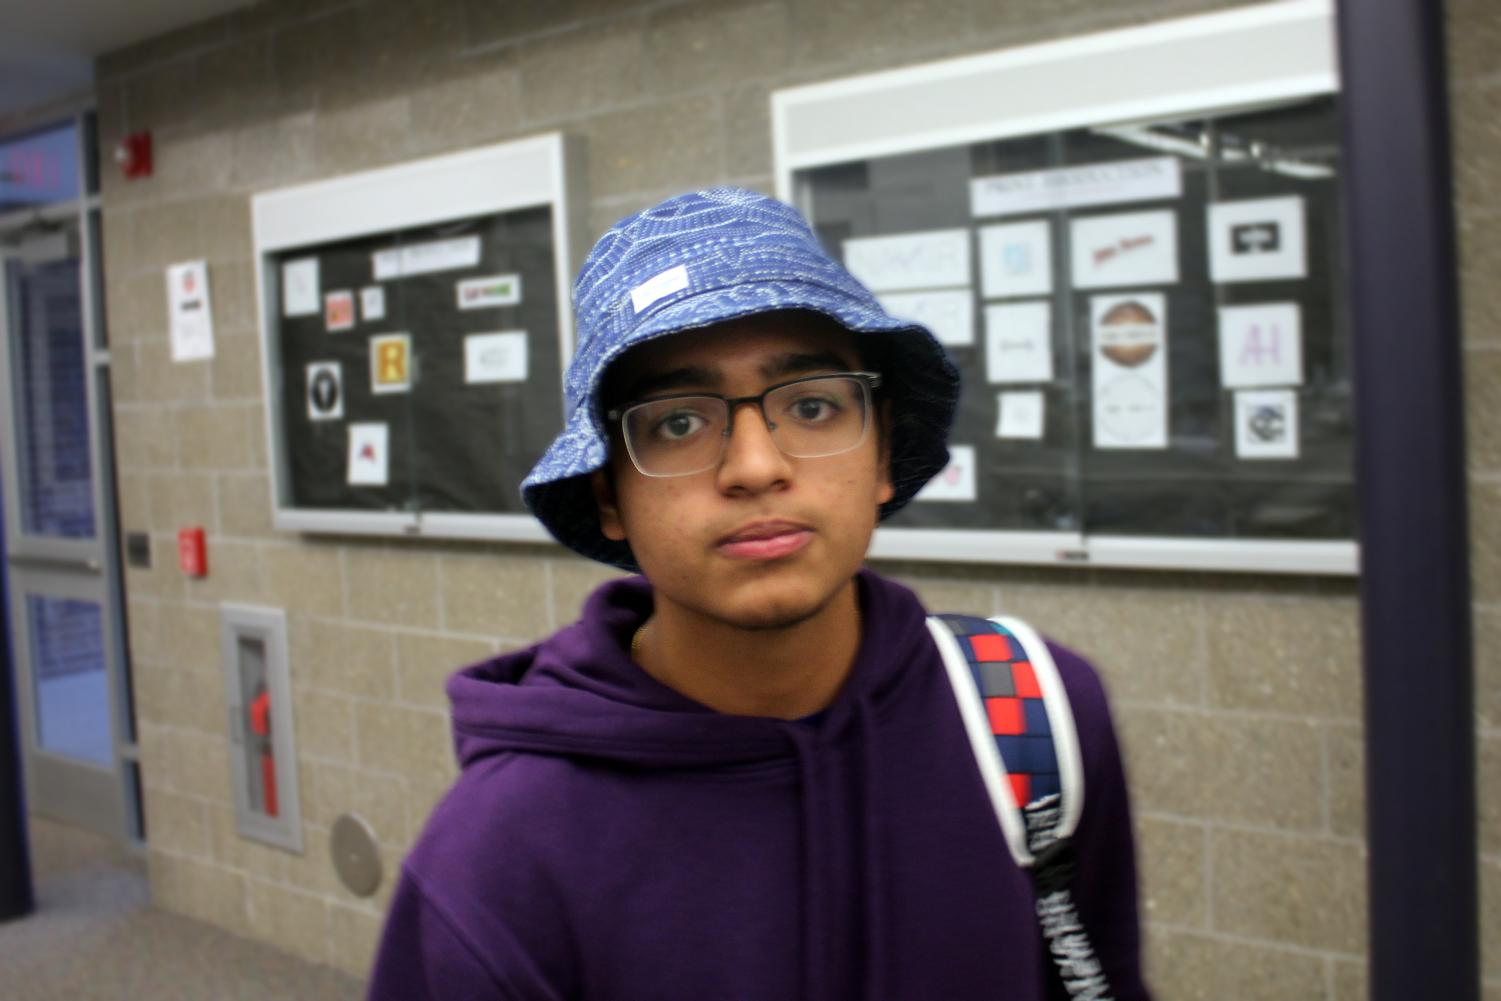 Students+dressed+in+Hawaiian+shirts+and+sunglasses+on+Thursday+to+earn+participation+points+for+Tourist+Day.+Junior+Parthesh+Patel+of+Freehold+wears+a+bucket+hat.+%E2%80%9CI+feel+that+it+brings+out+my+more+tropical+side%2C%E2%80%9D+Patel+said.